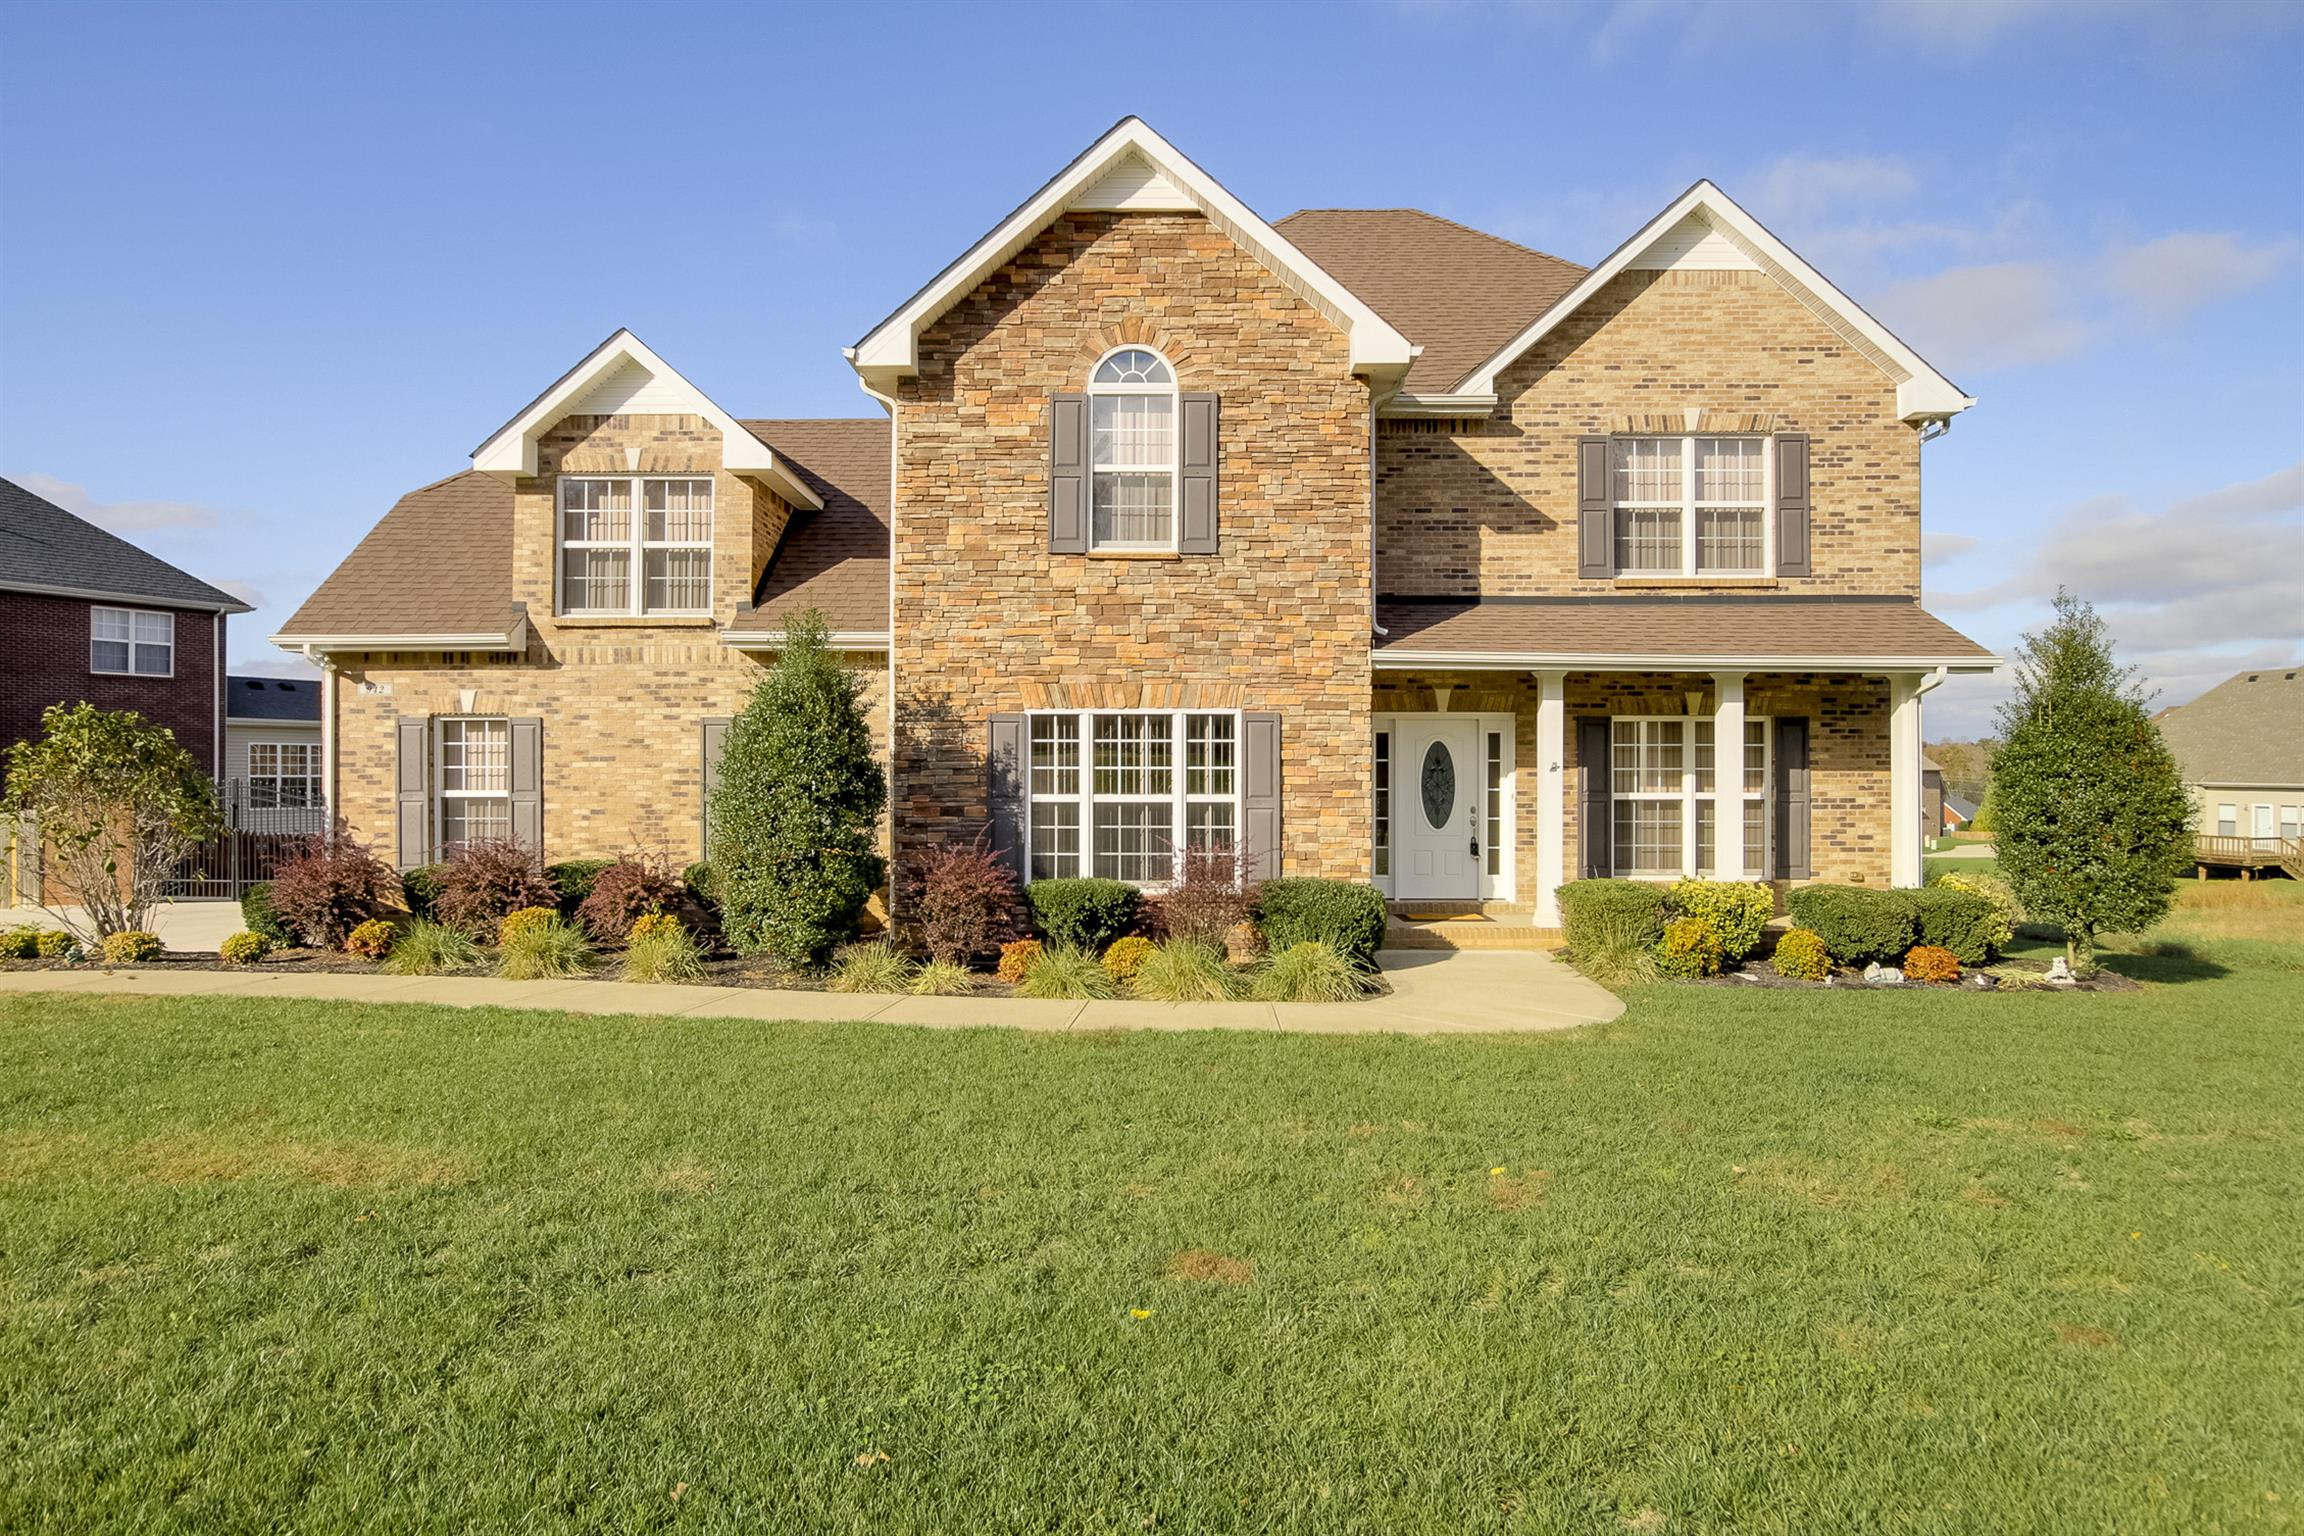 942 Terraceside Cir, Fort Campbell, Tennessee